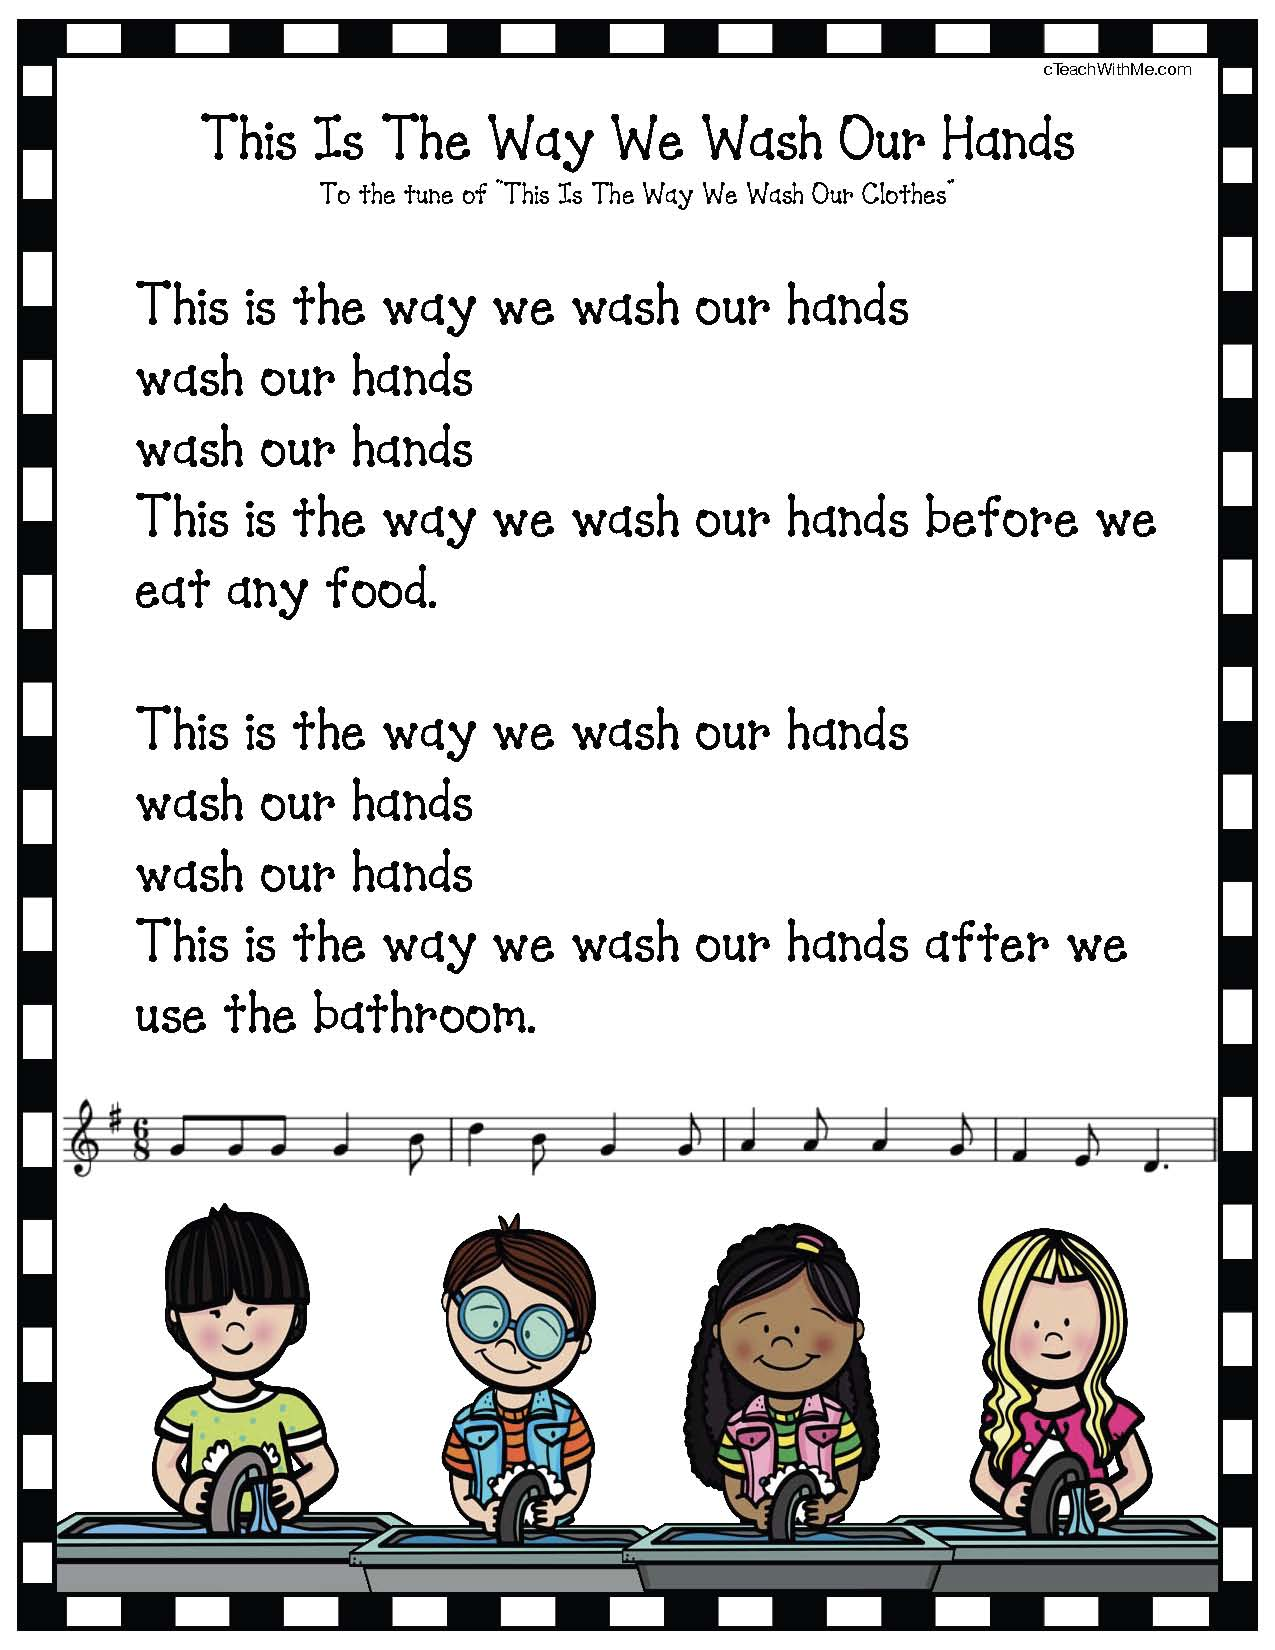 this is the way we wash our hands song poster, proper hand washing techniques, personal hygiene activities, hand washing song, hand washing puzzle, germ fighting activities, hand washing poster, hand washing puzzle, hand washing centers